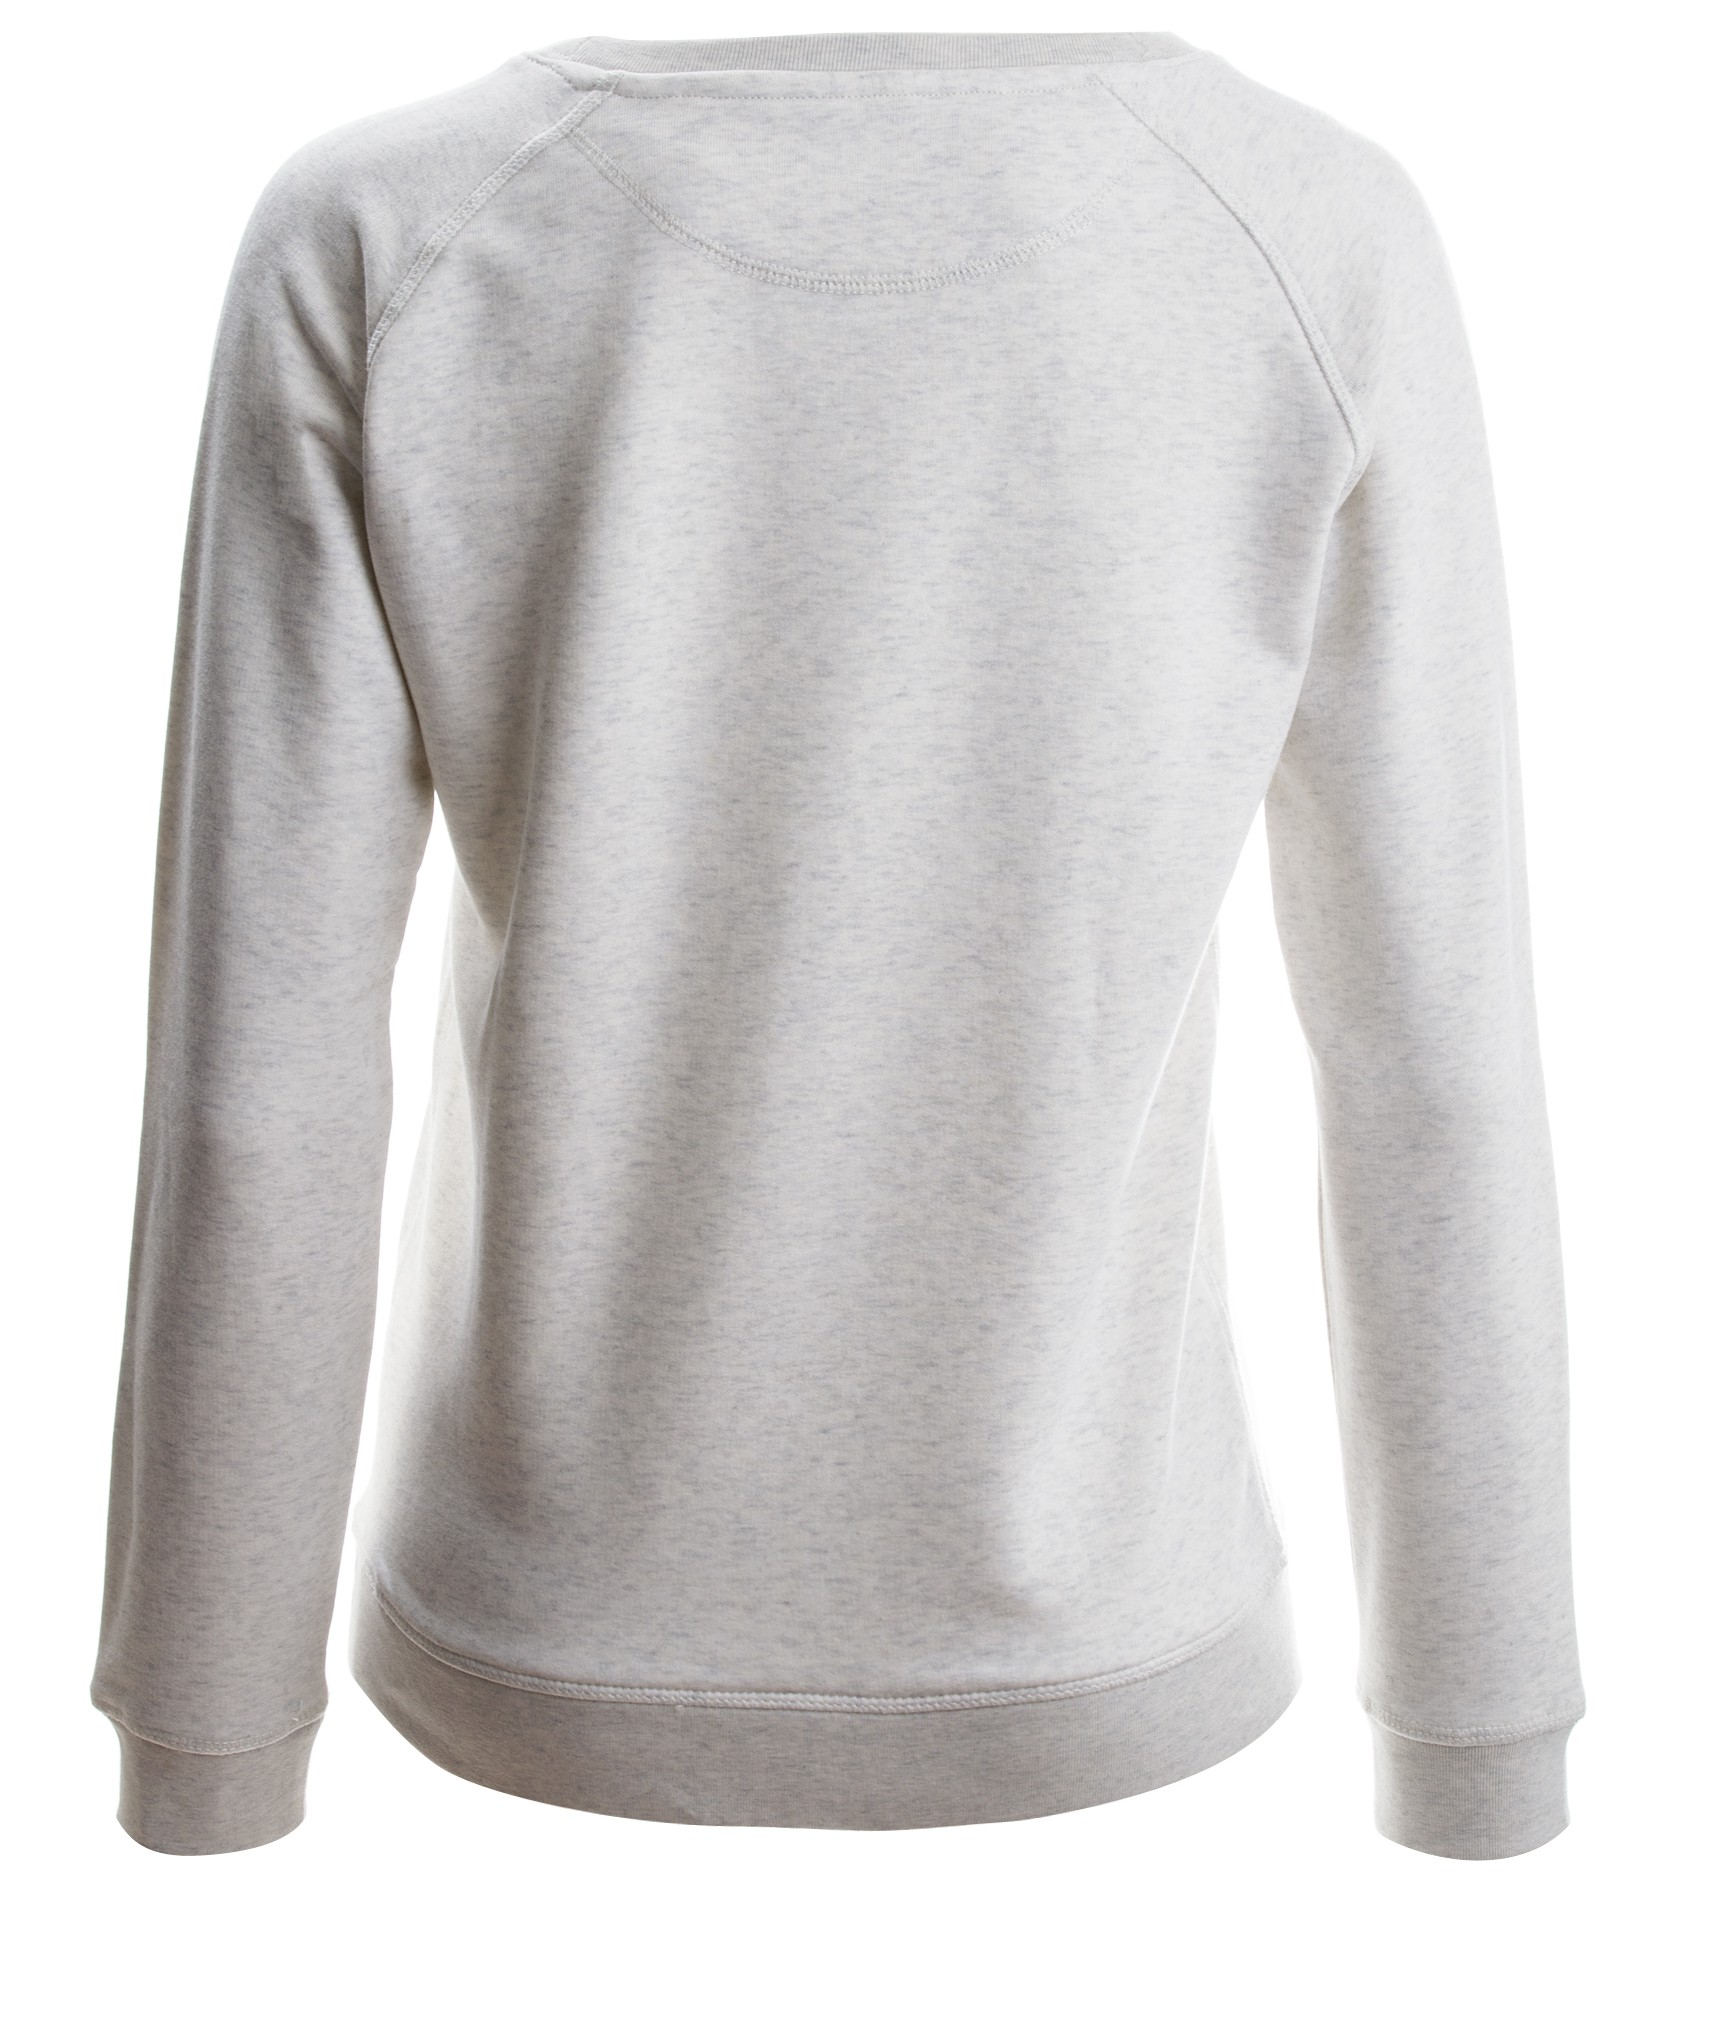 stella_stanley_trips-light_grey_back_glore(1)